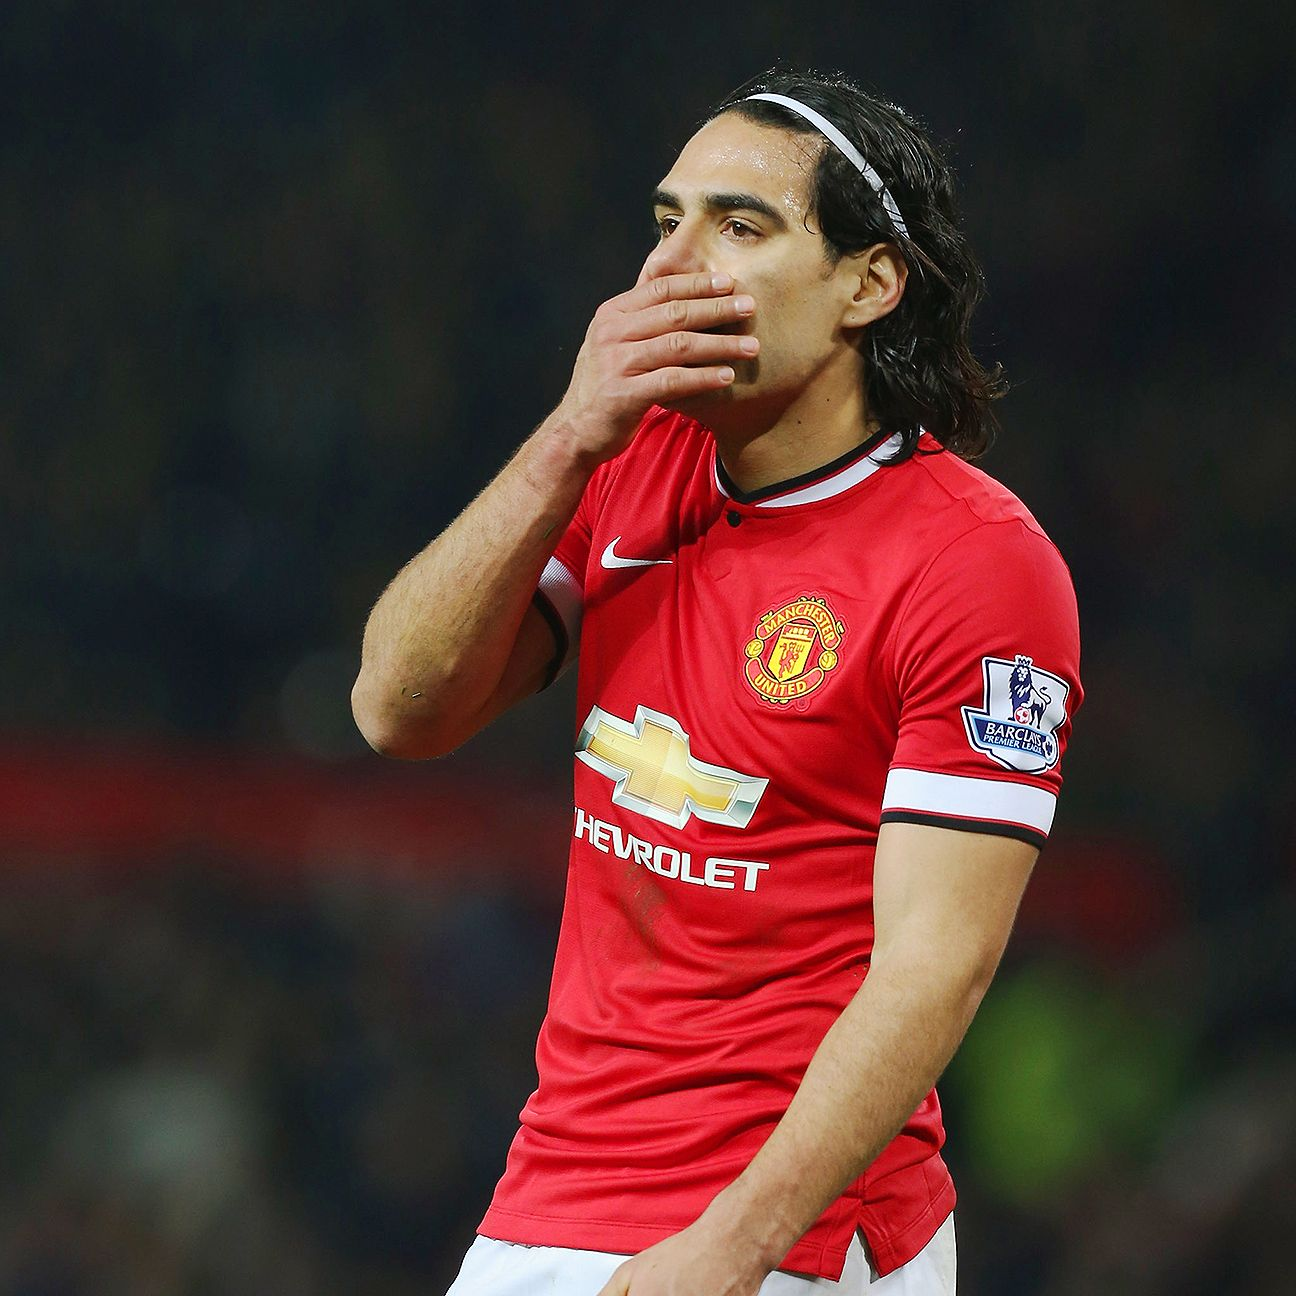 Radamel Falcao only scored four Premier League goals for Manchester United in 2014-15.